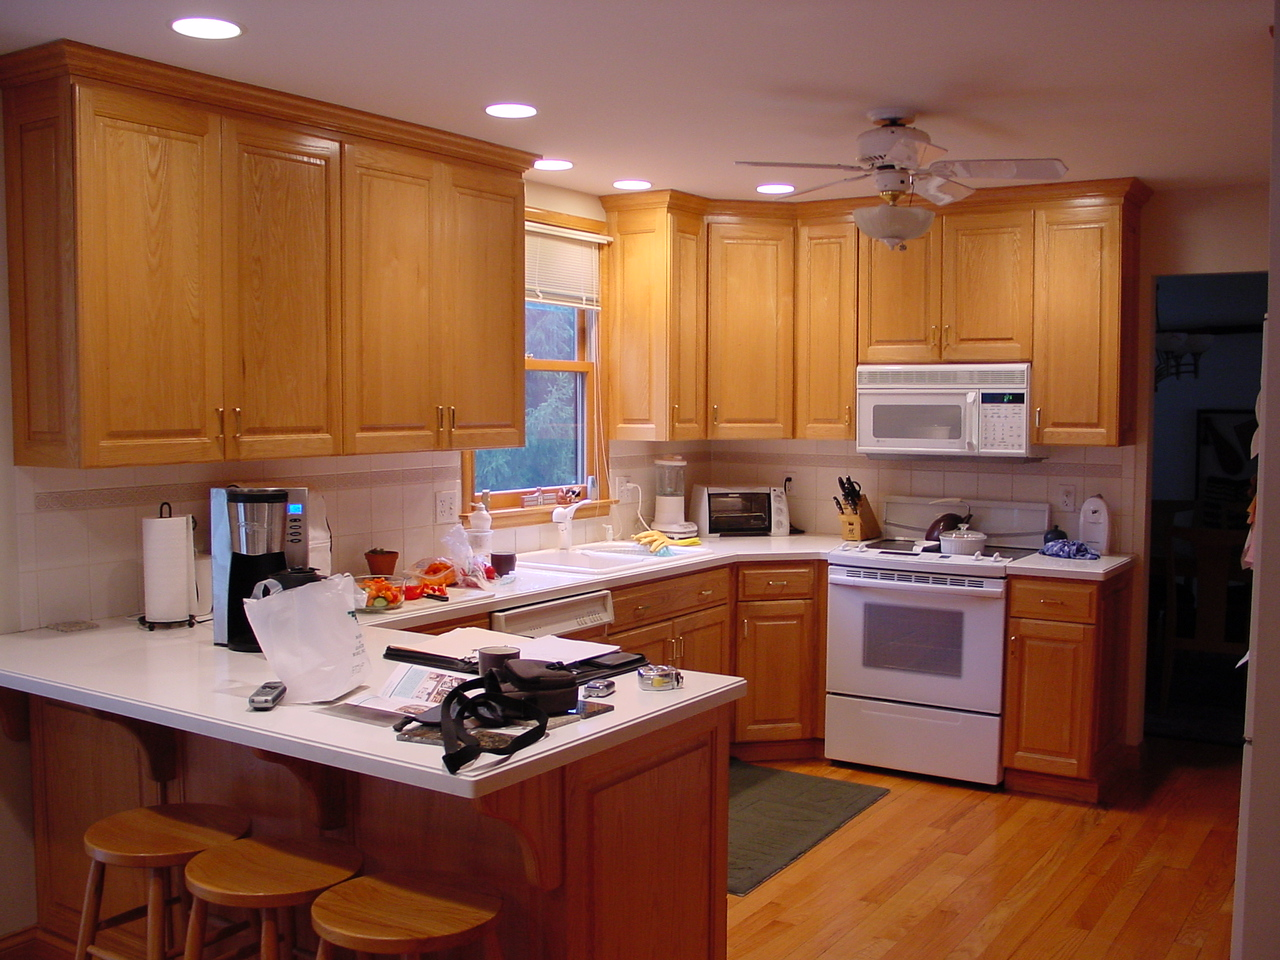 born kitchen-3.JPG